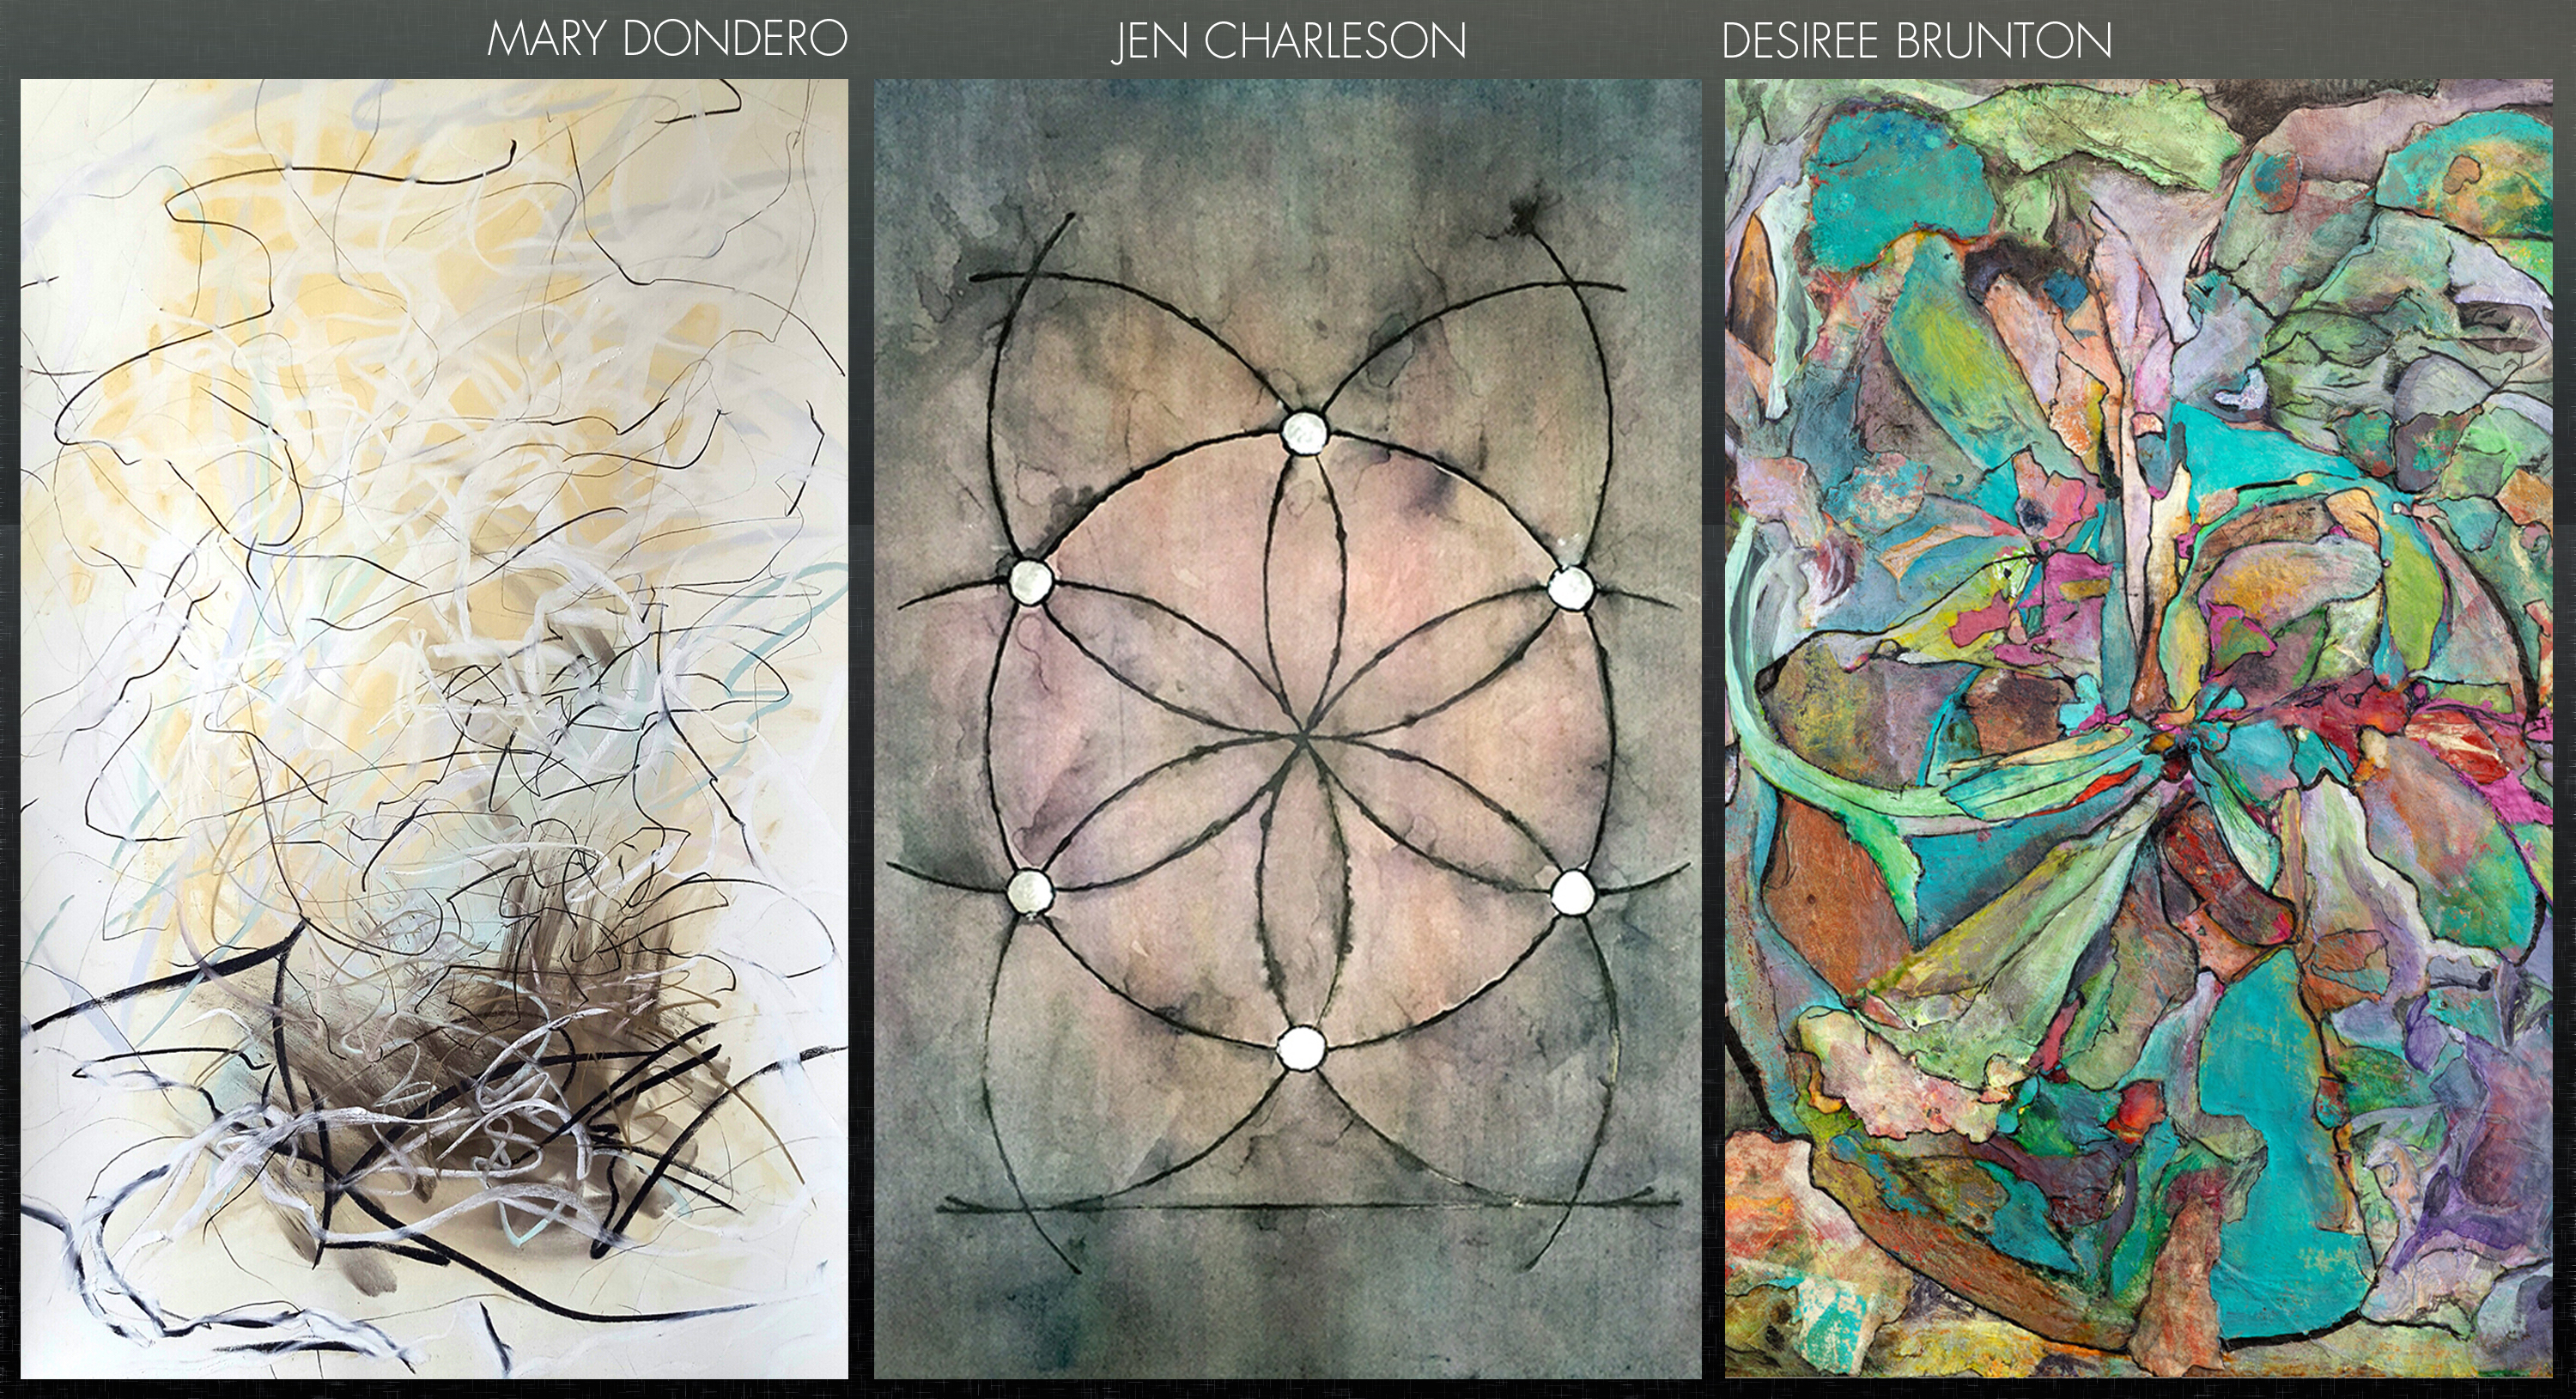 Meditations: Intuitive explorations of the inner realm through art